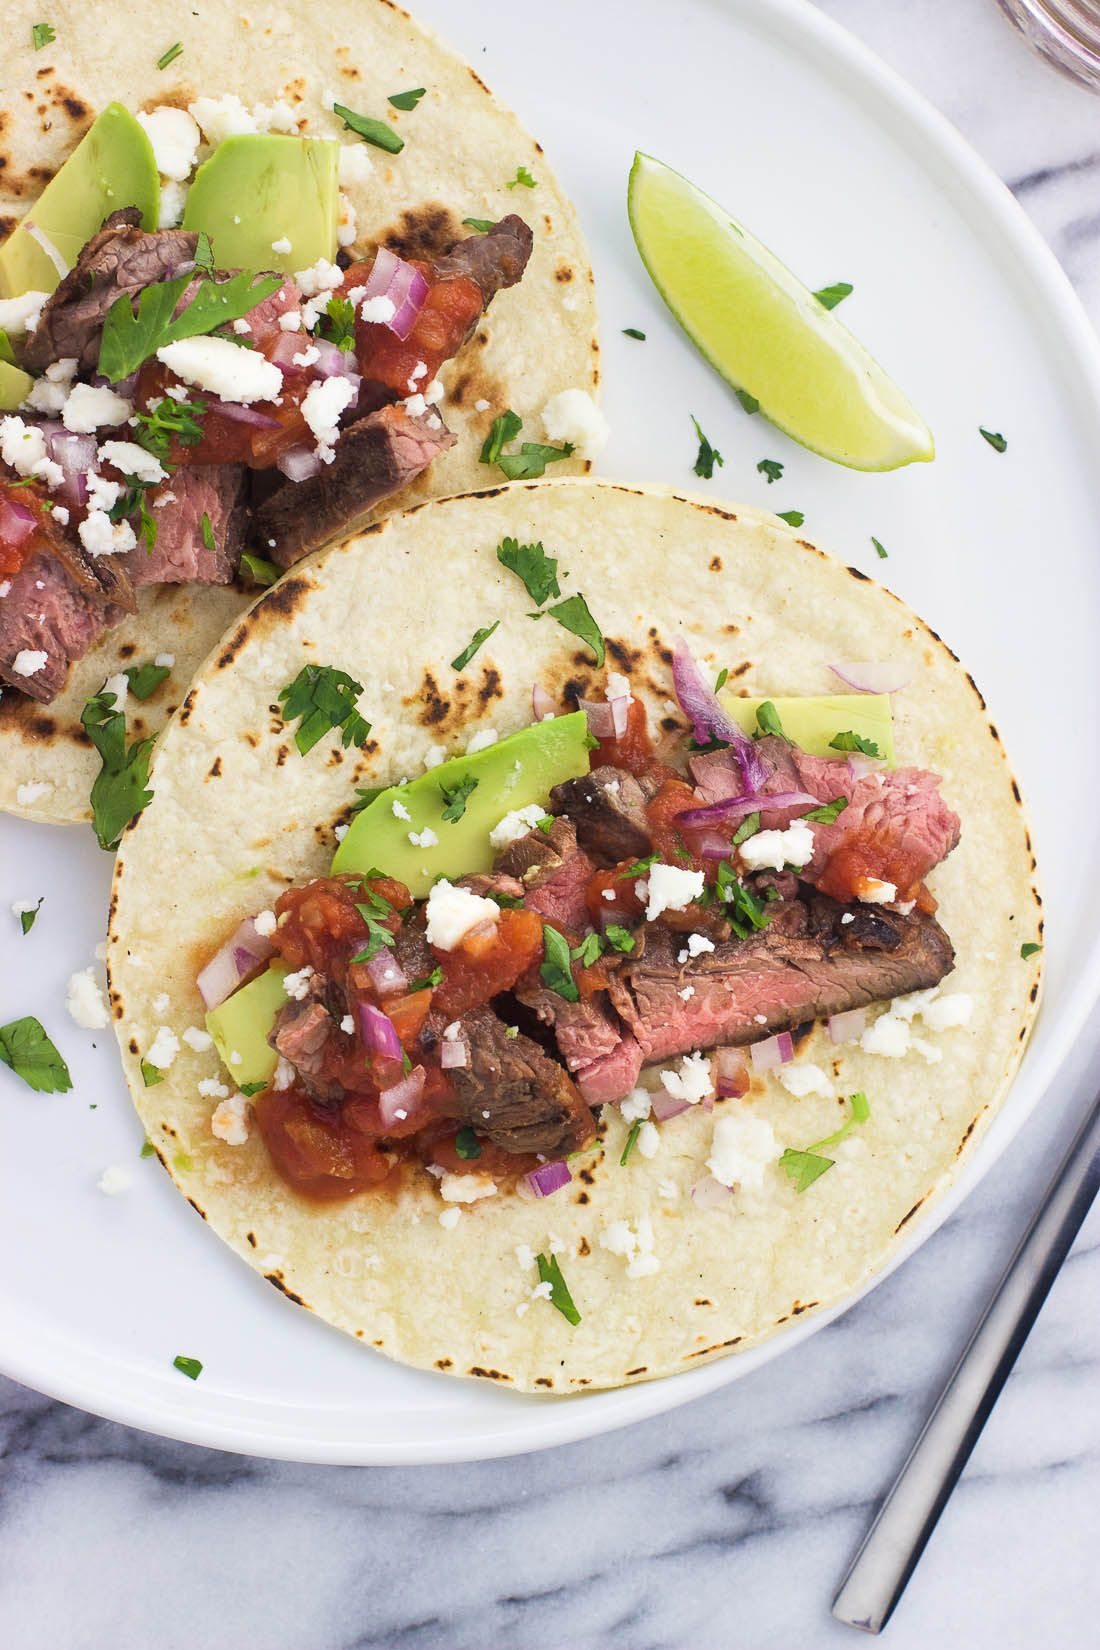 Carne asada tacos feature tender grilled skirt or flank steak in the BEST carne asada marinade. Serve them alongside a plethora of your favorite taco toppings and spice up taco night! #asadatacos